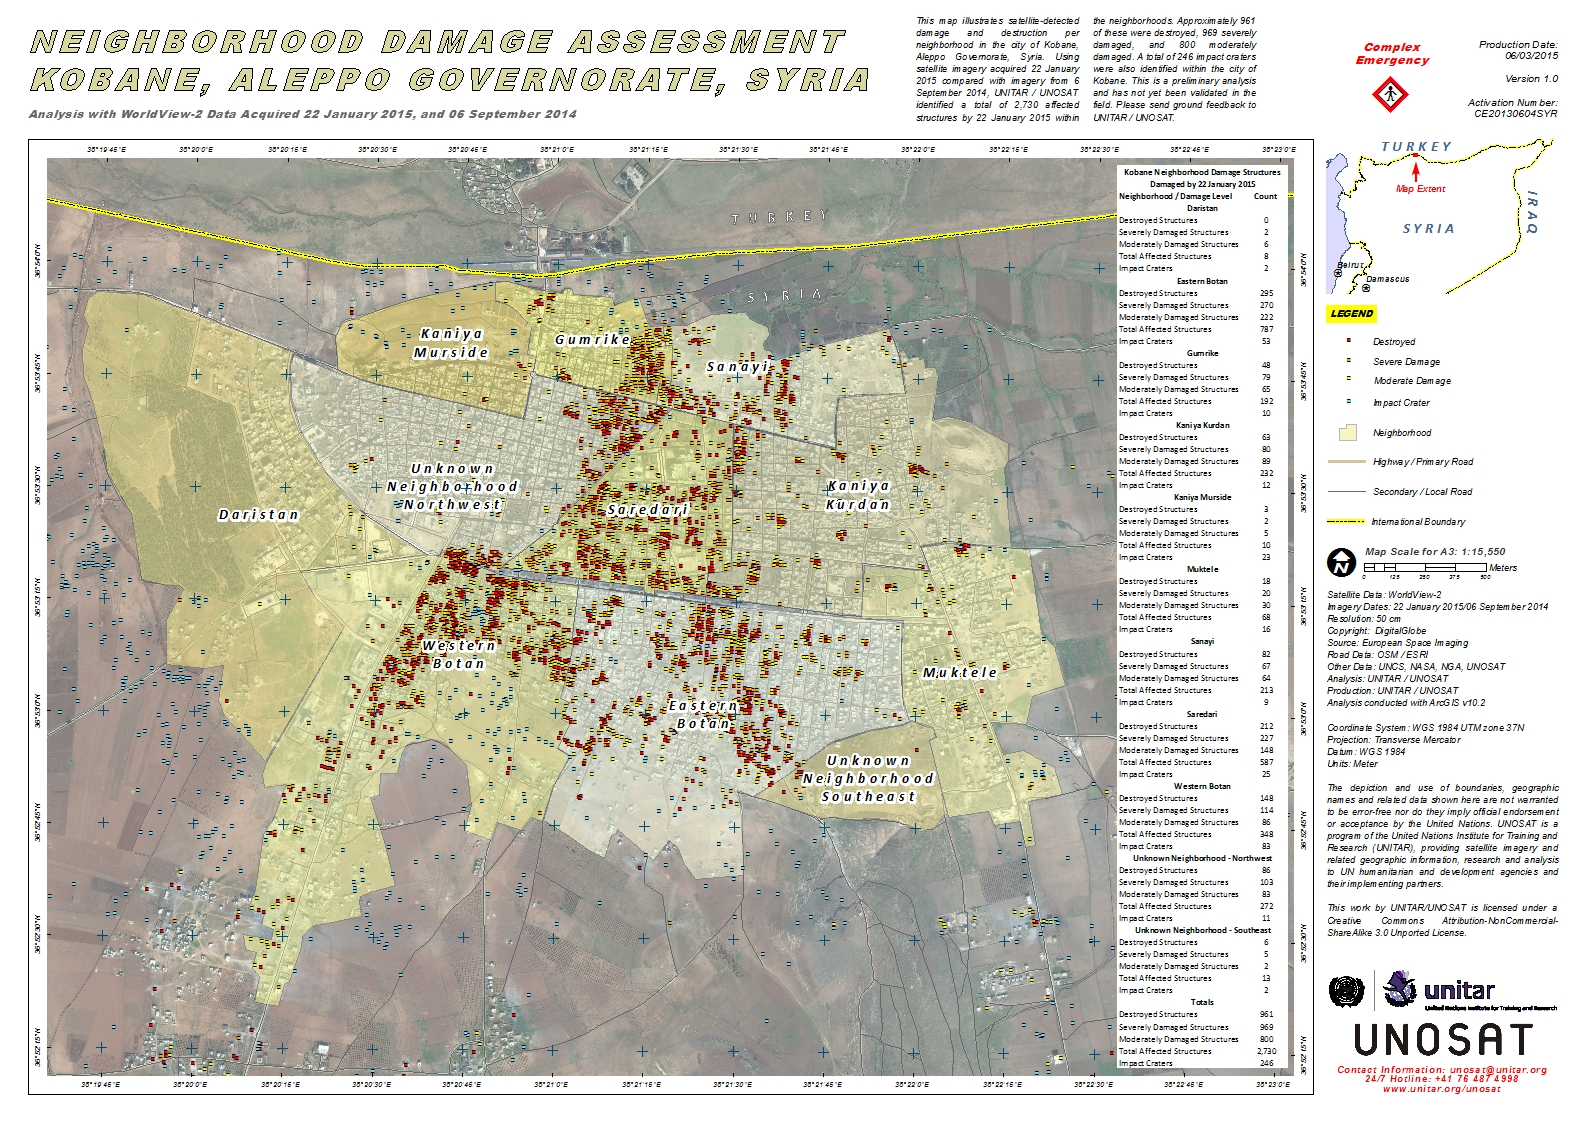 Neighborhood Damage Assessment Kobane Aleppo Governorate Syria